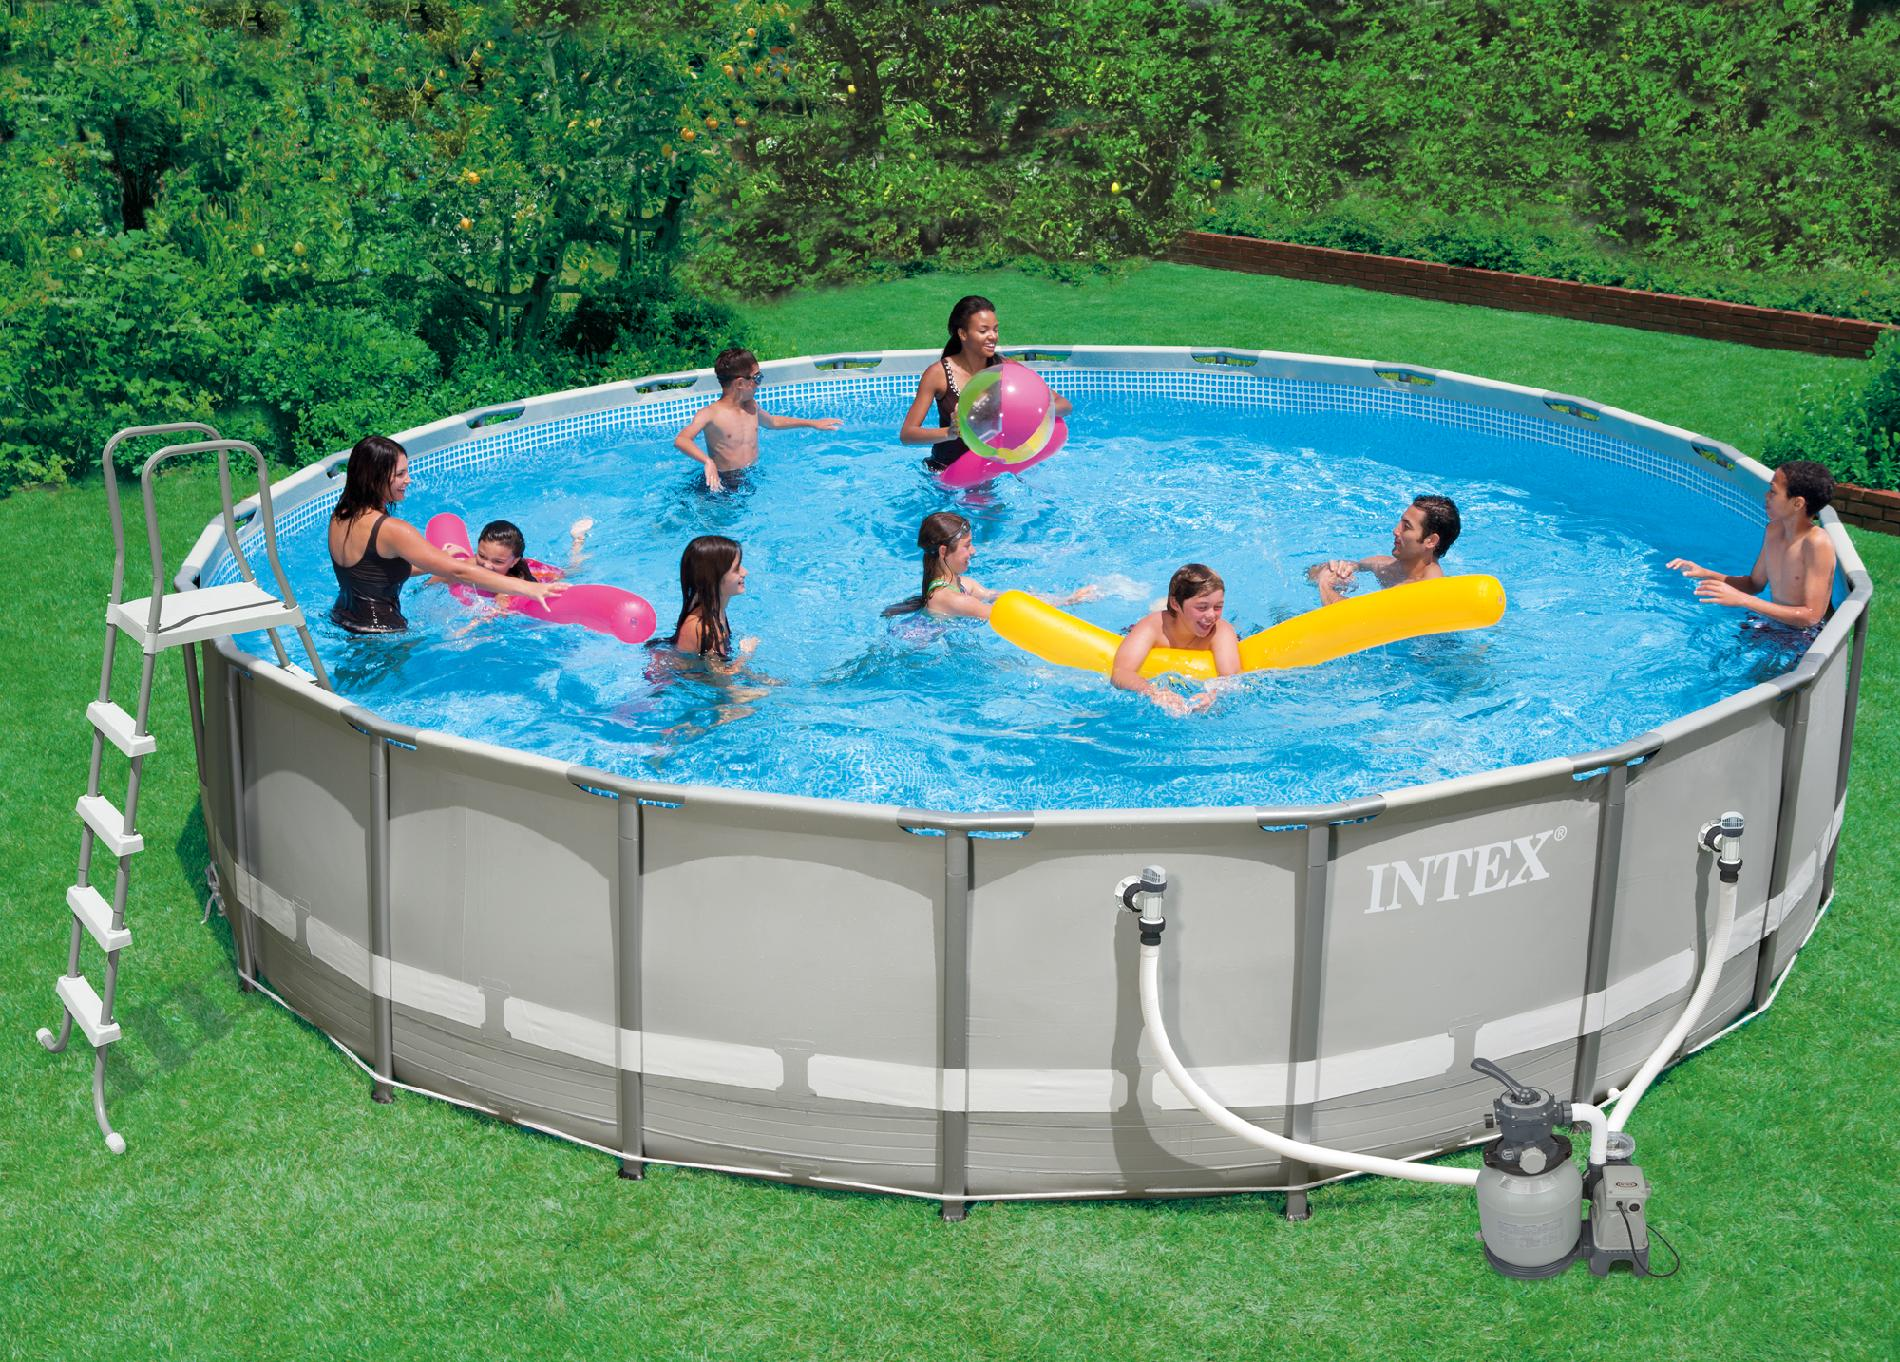 Intex Vs Bestway Review Coleman Pools Vs Intex Pools Which One Should You Buy